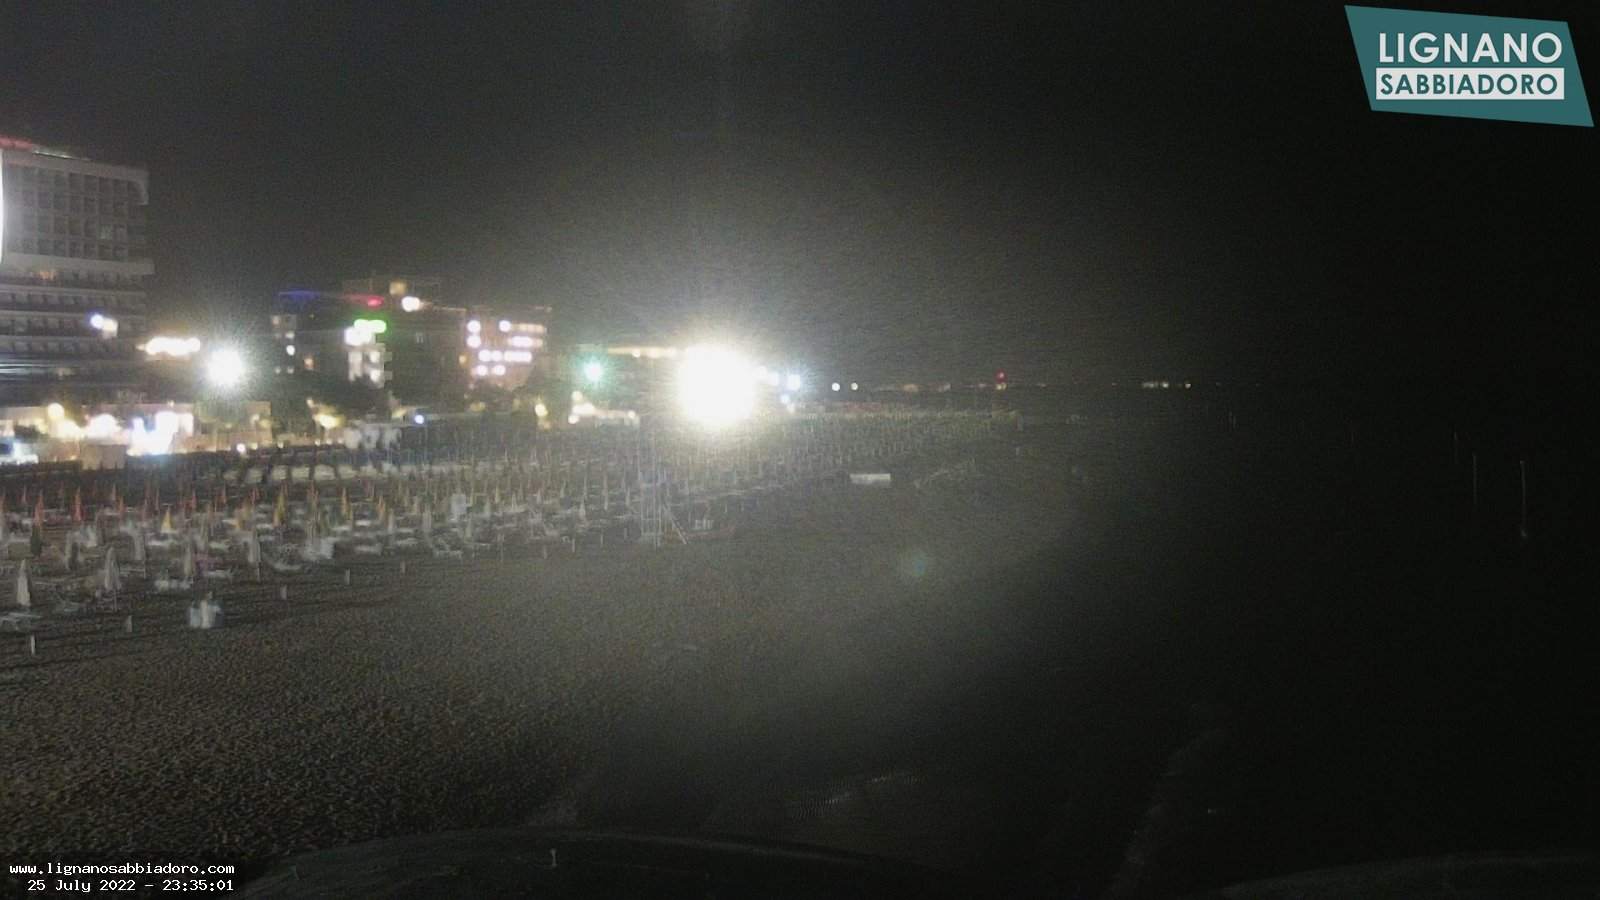 Webcam Lignano in Tempo Reale - Diretta Streaming Live